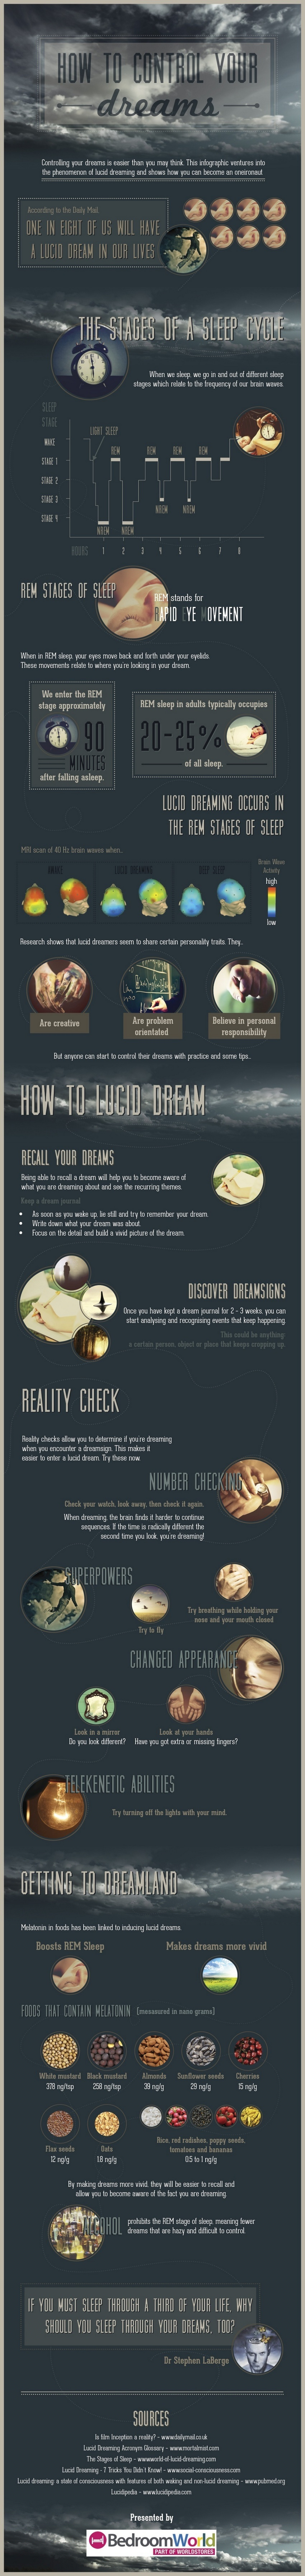 How to control your dreams infographic.